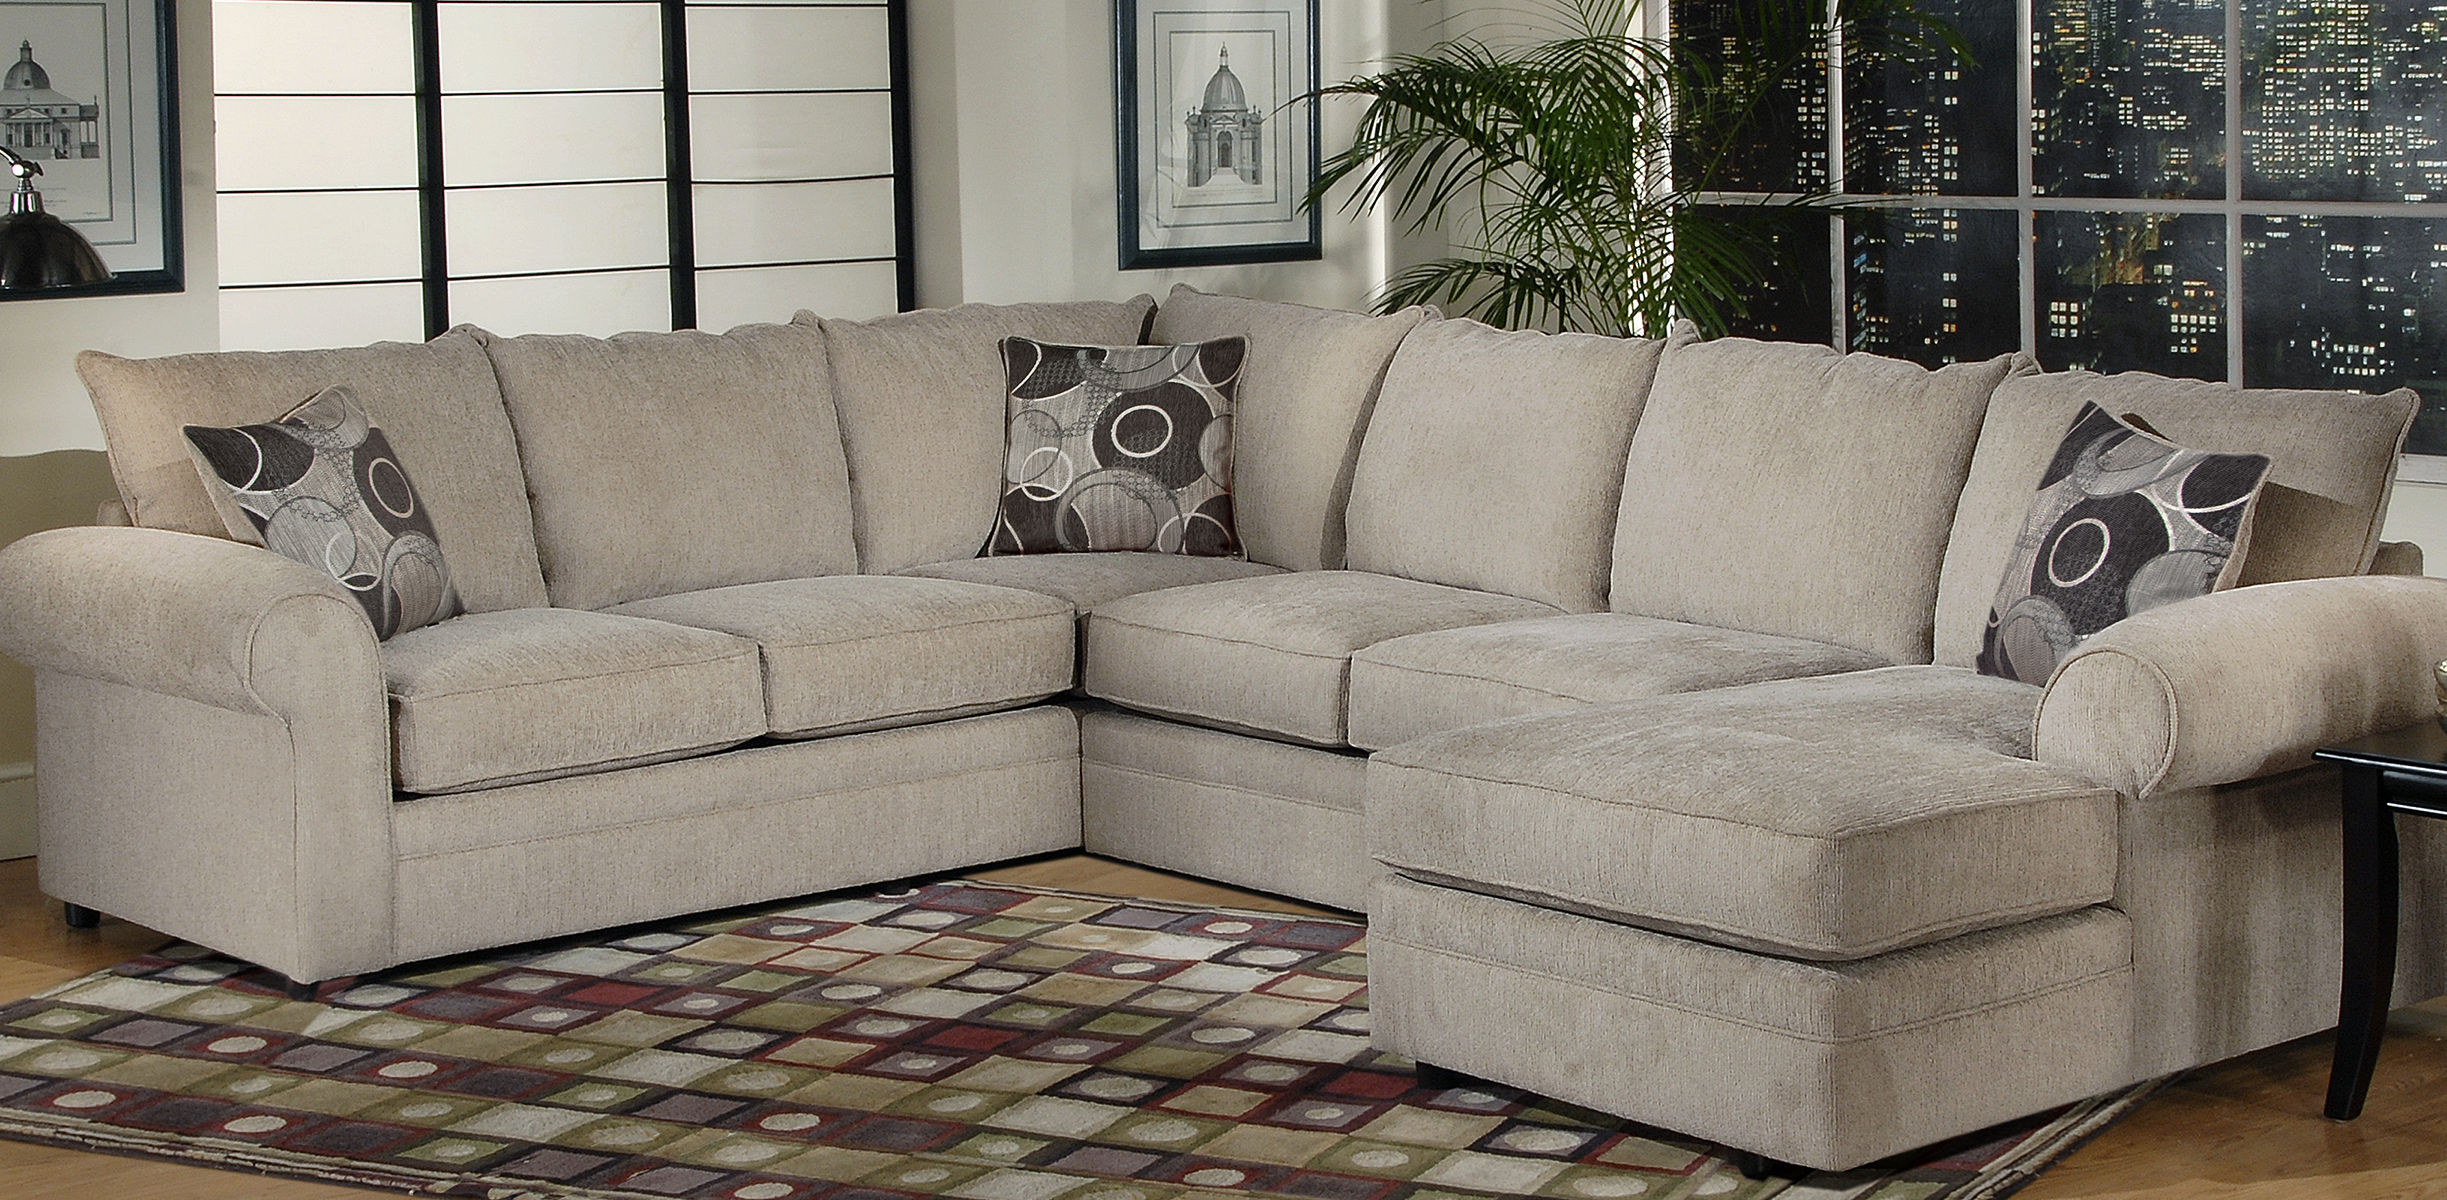 Serta Upholstery Sectionals: Ashas Spiritual Essence Throughout Harmon Roll Arm Sectional Sofas (View 1 of 15)